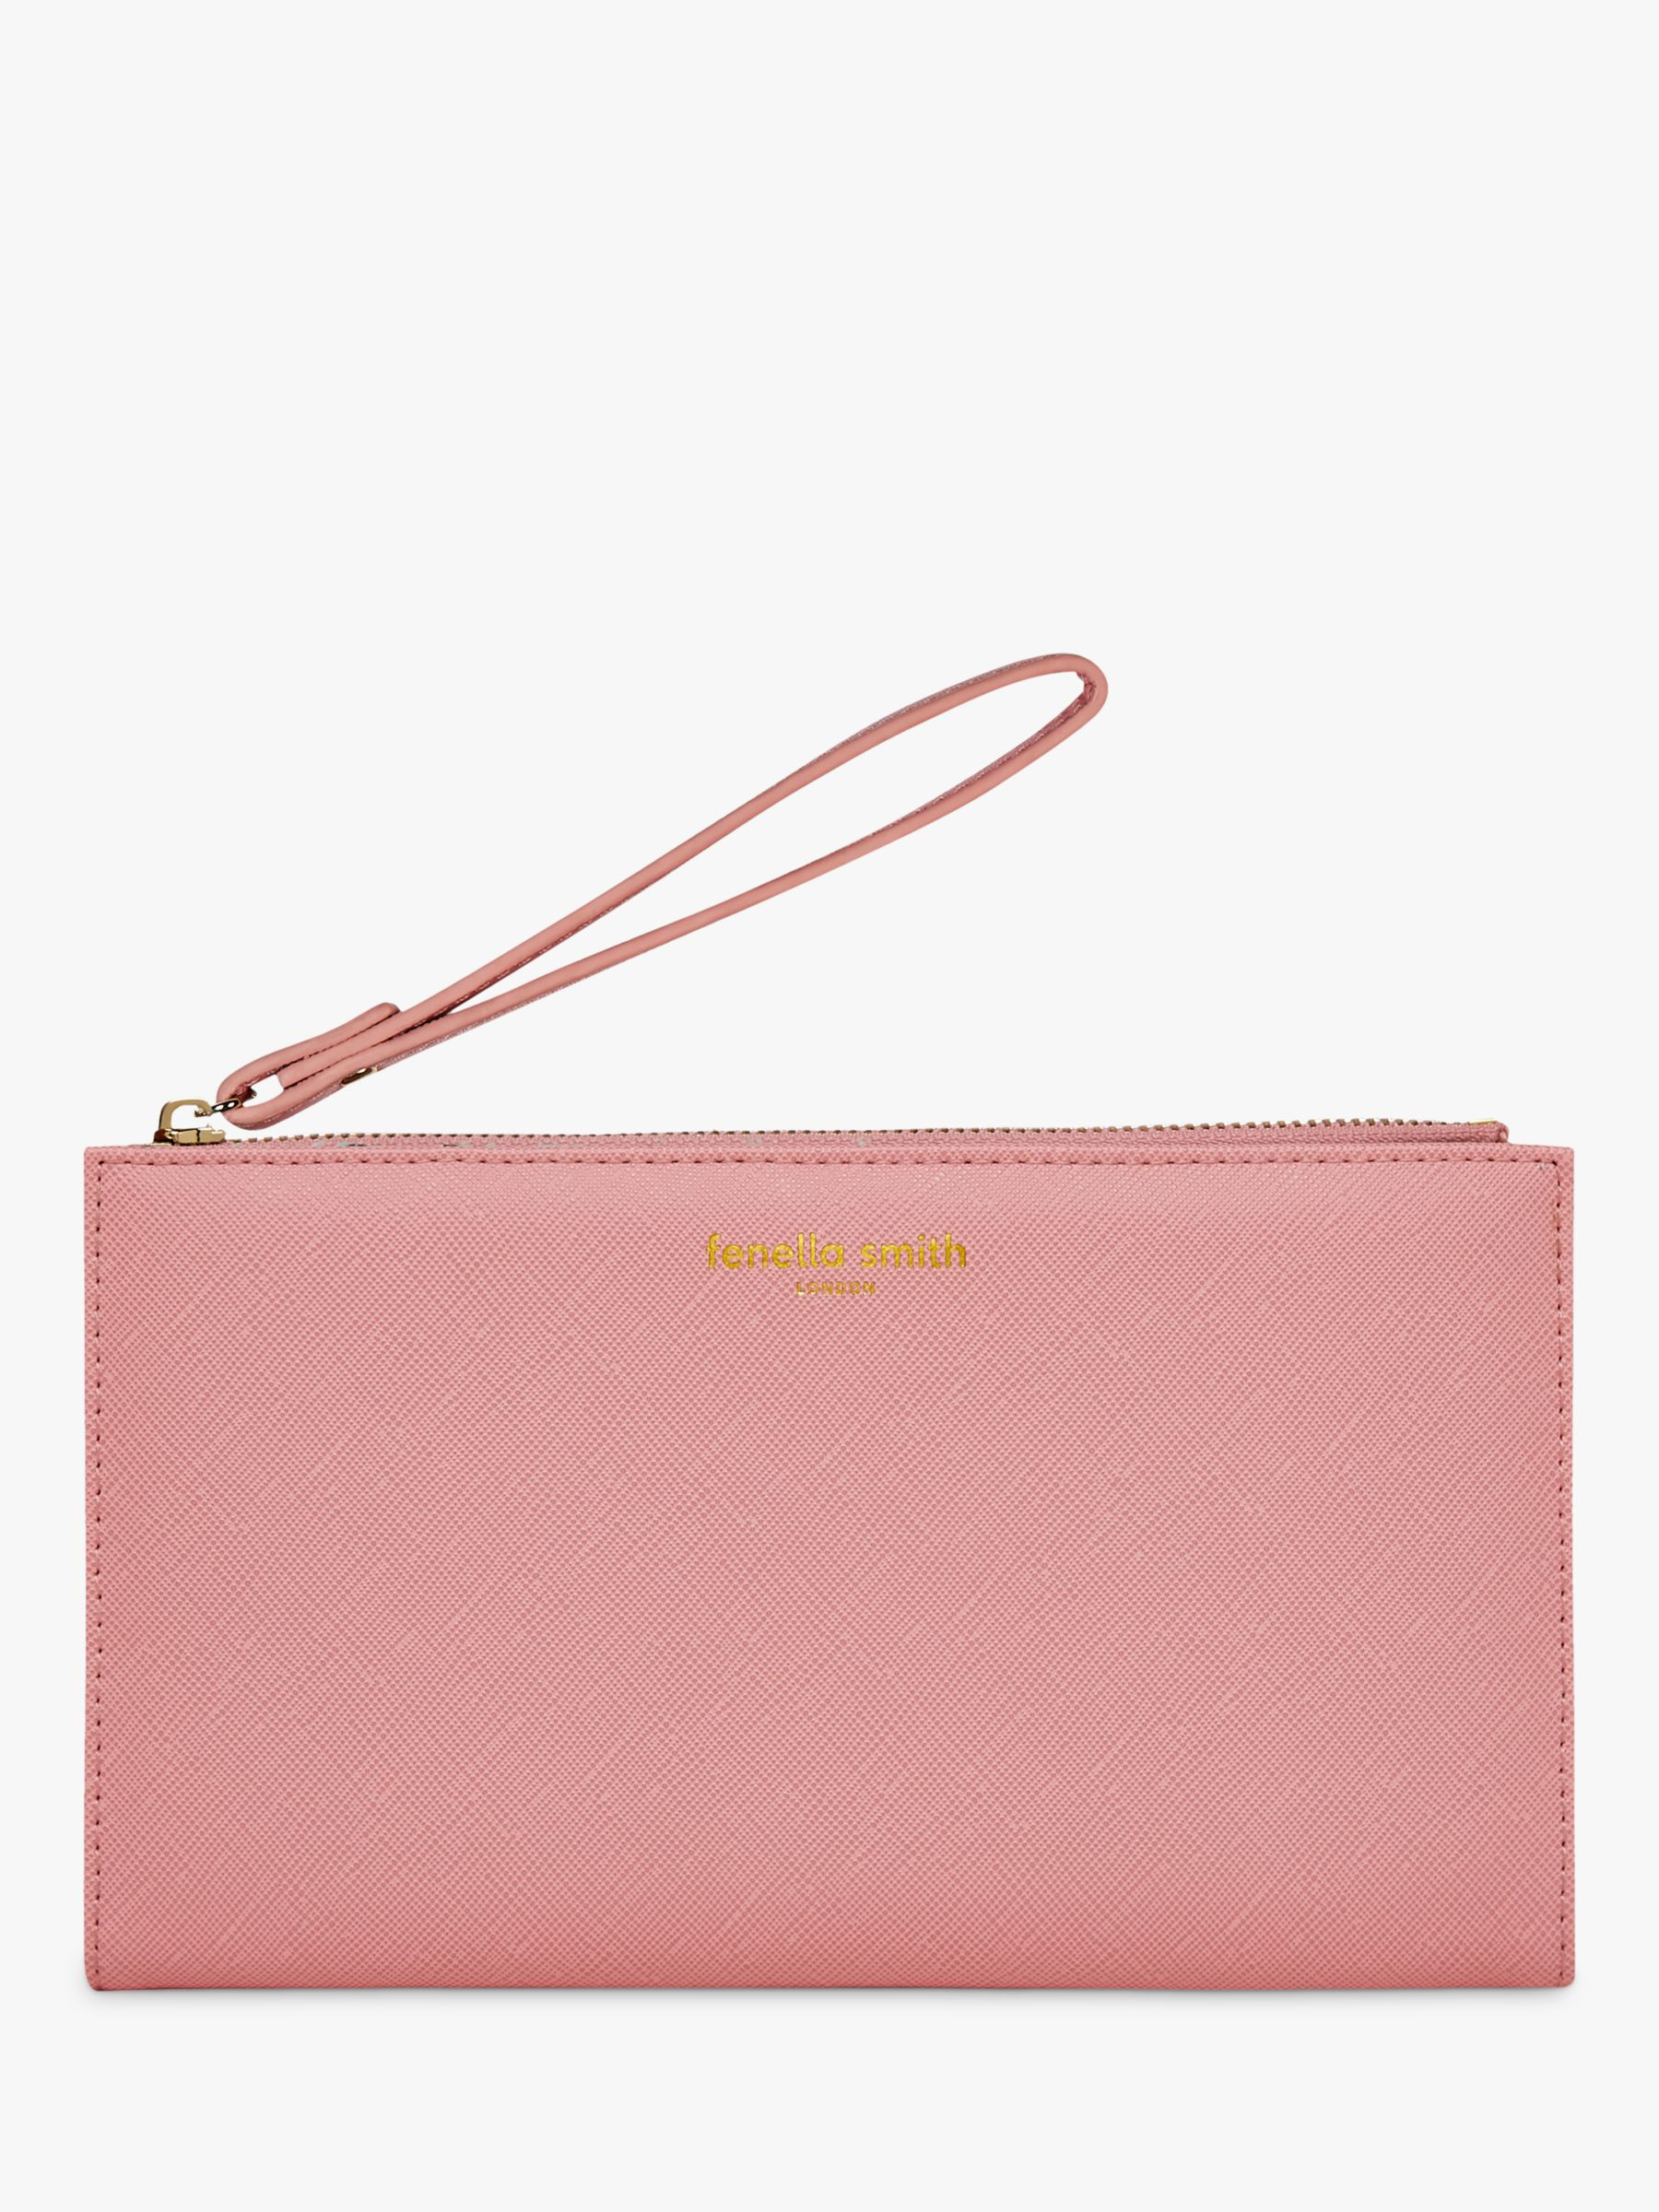 Fenella Smith Fenella Smith Blush Palm Wristlet Purse